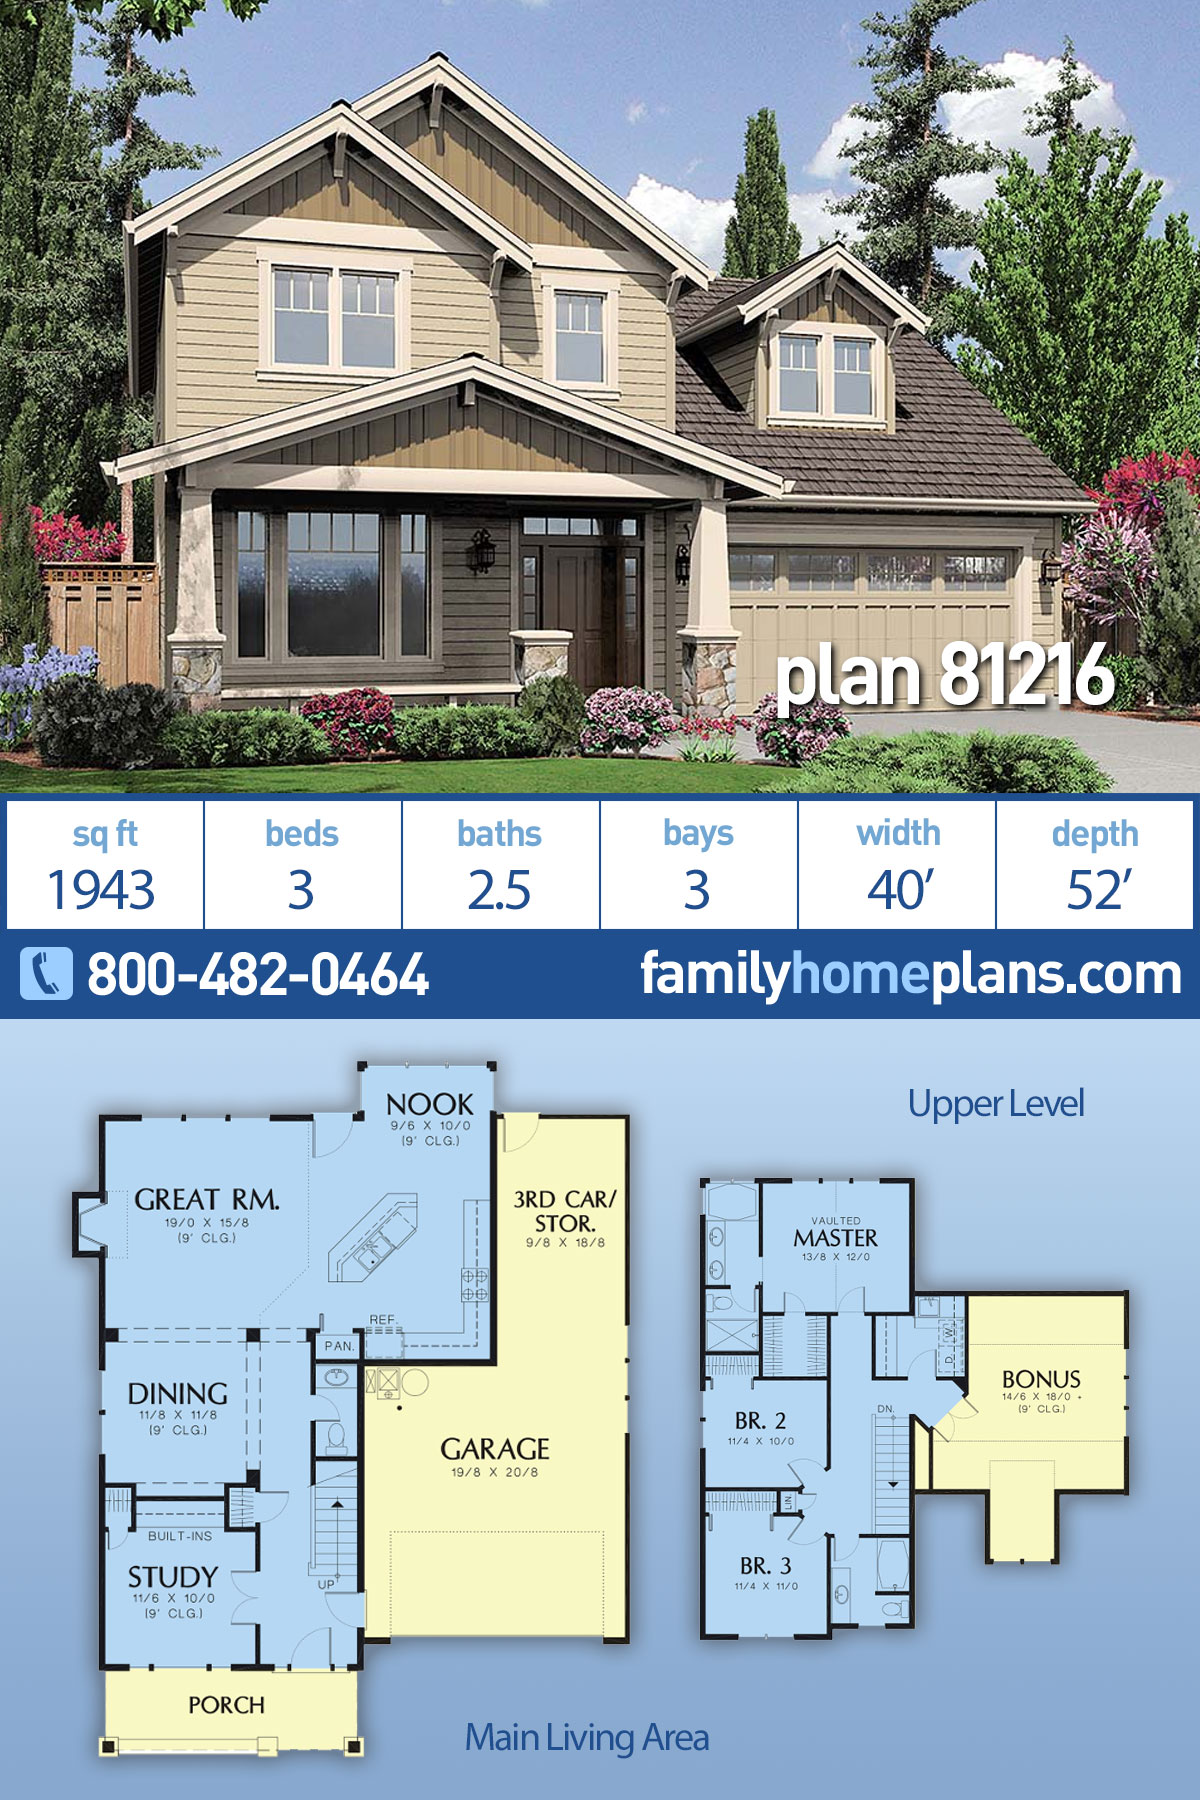 Craftsman, Traditional House Plan 81216 with 3 Beds, 3 Baths, 3 Car Garage